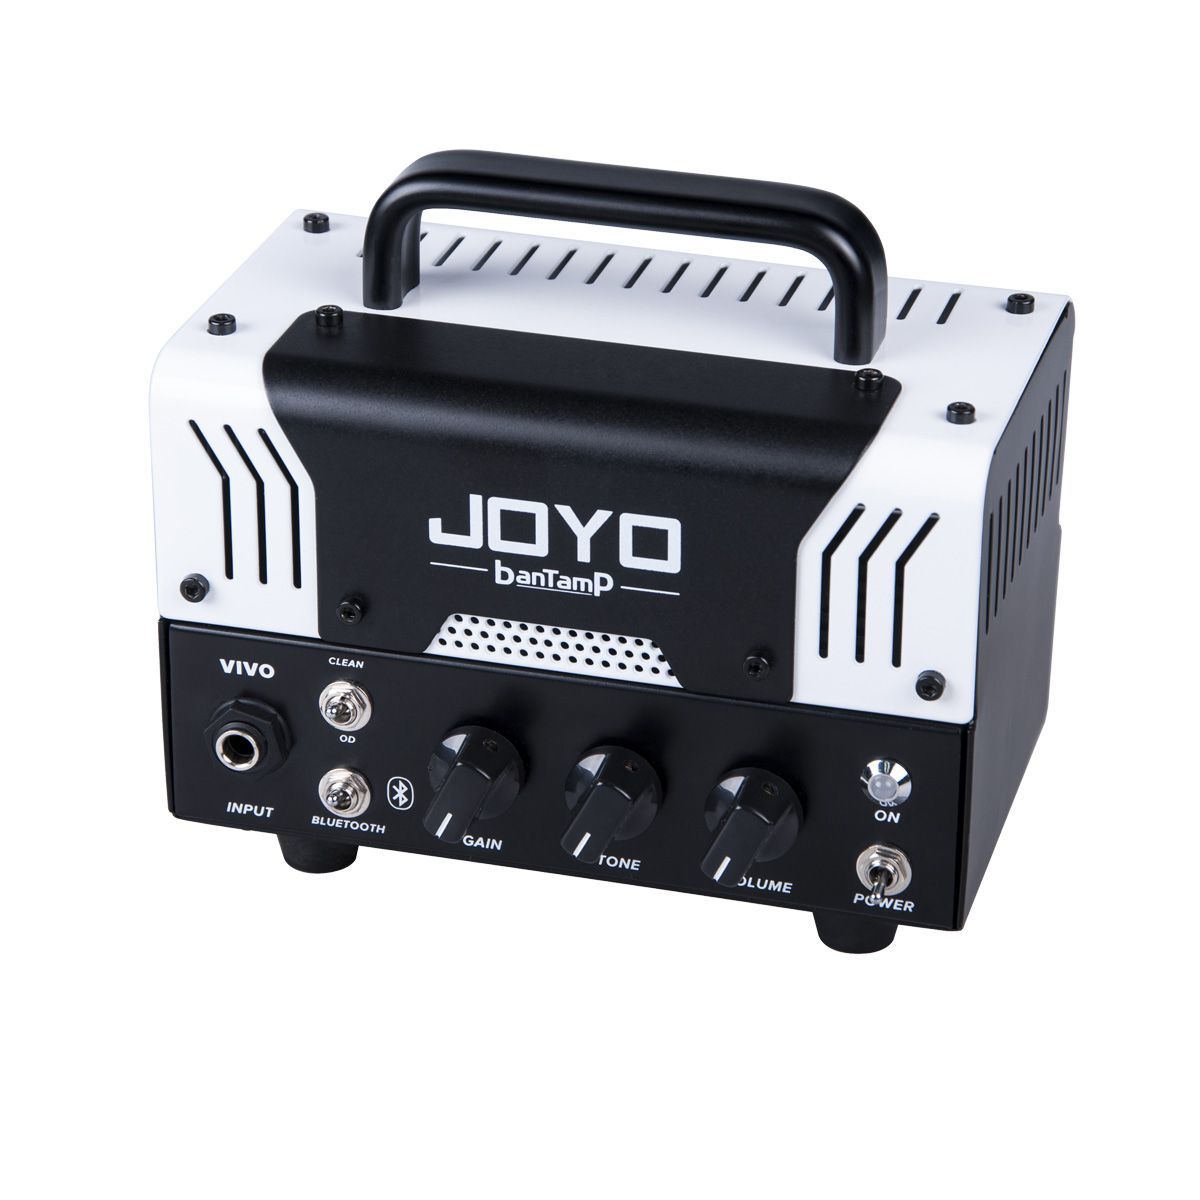 Mini Amplificador JOYO VIVO BantamP 20W para Guitarra